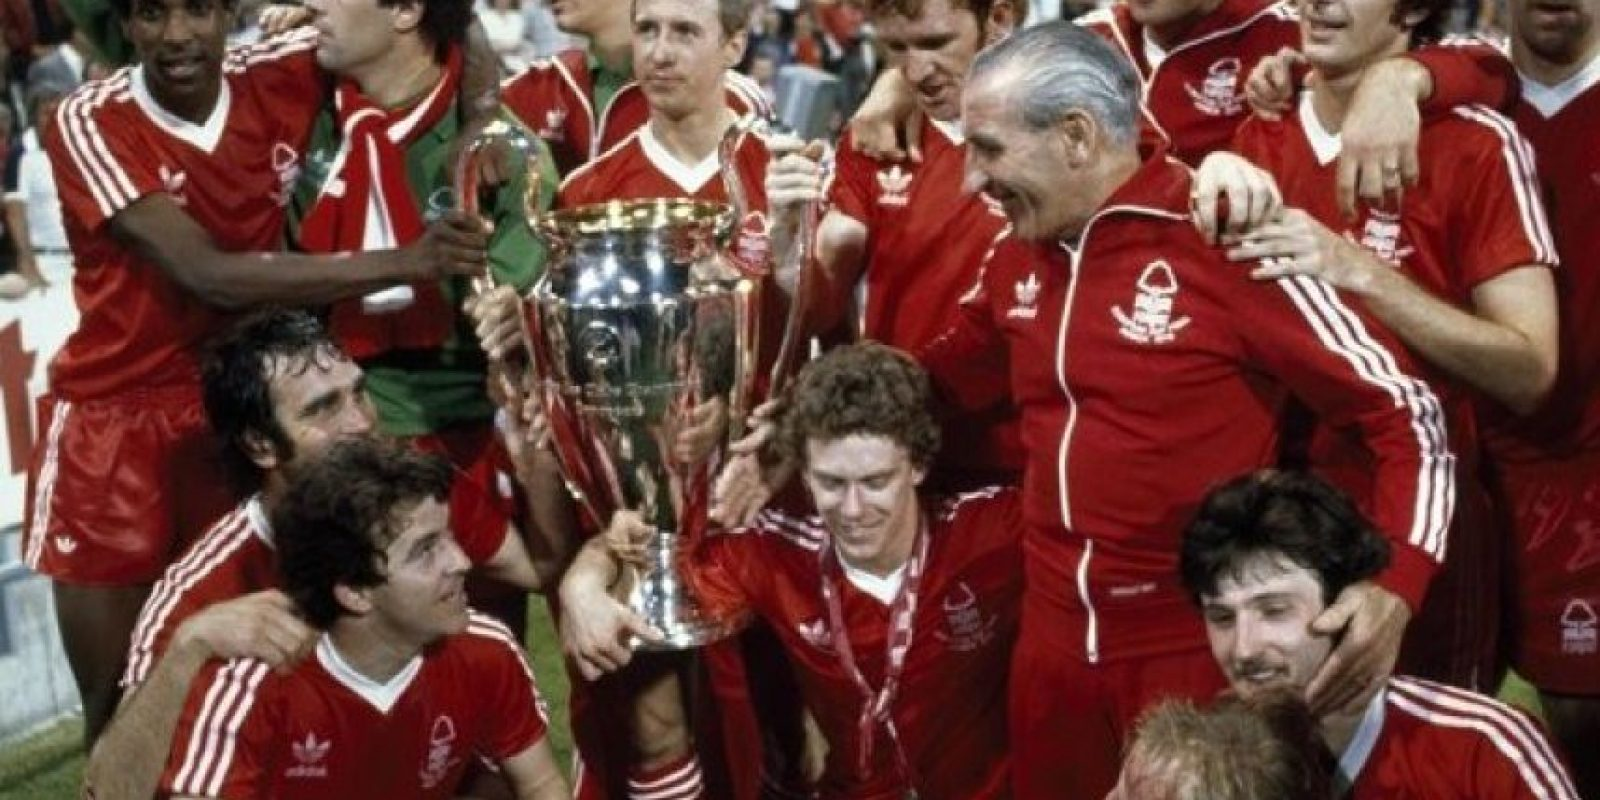 Nottingham Forrest (Inglaterra)-2 títulos: 1979, 1980 Foto: Getty Images